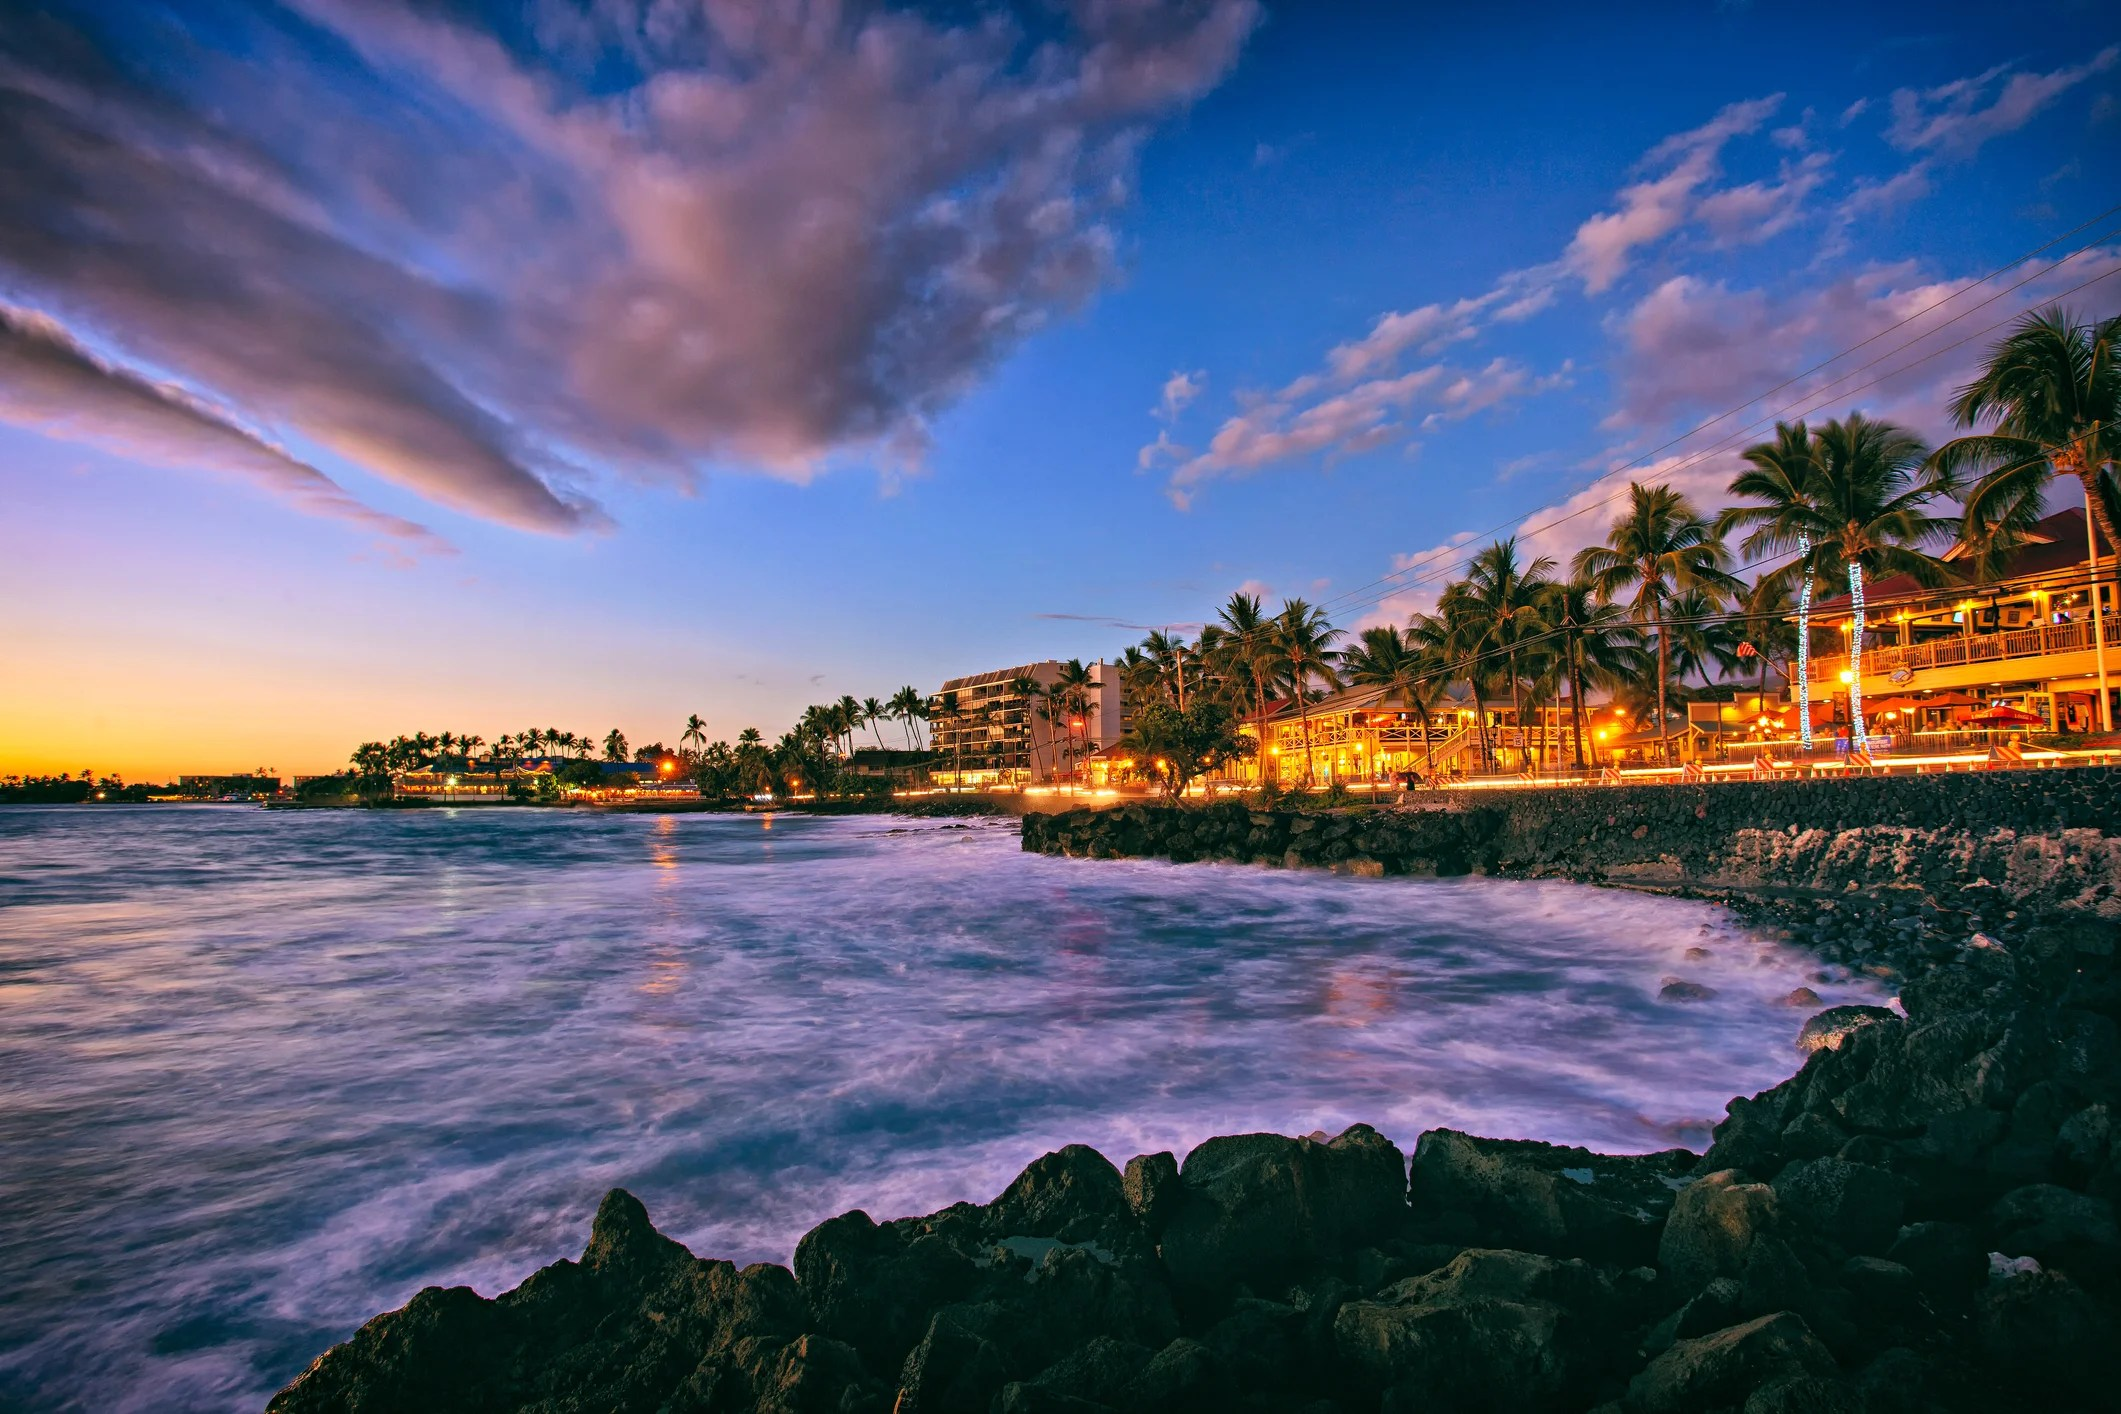 Deal Alert: Flights to Hawaii From $316 Round-Trip, Including a Carry-On Bag